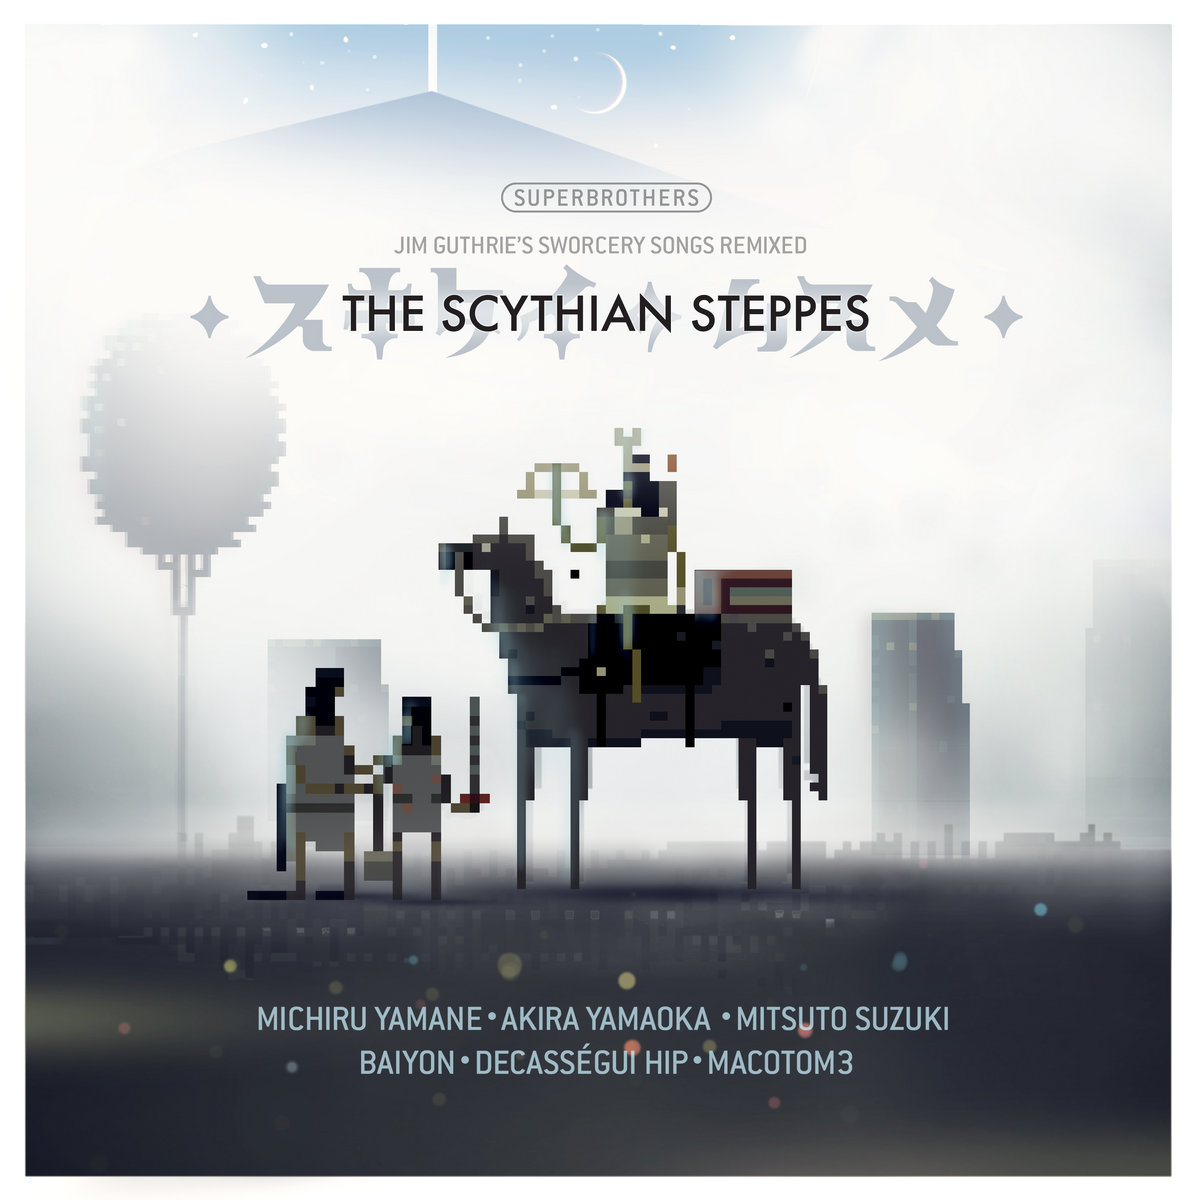 a0338812087_10 The Scythian Steppes: um remix das músicas de Sword & Sworcery